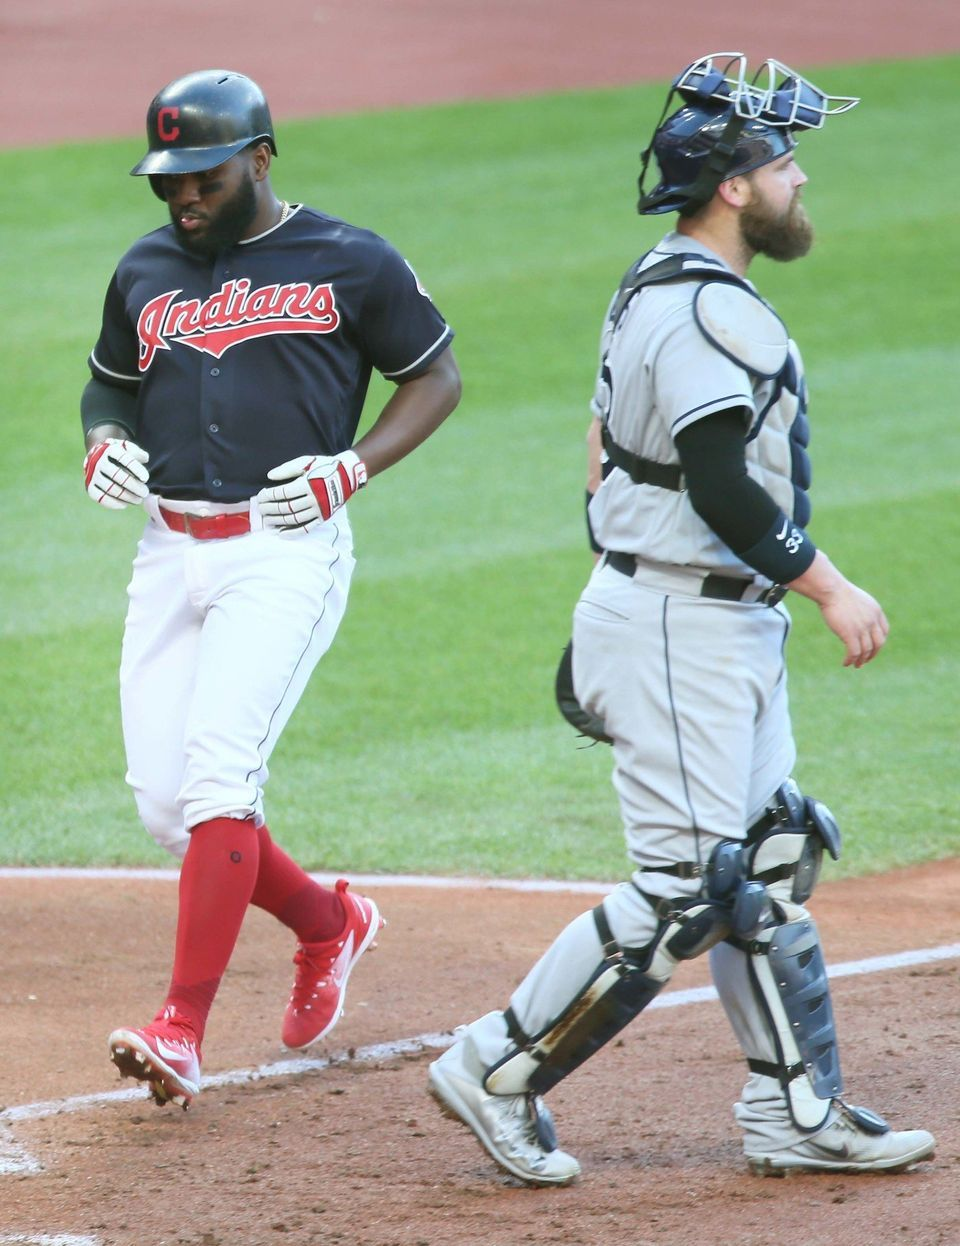 Cleveland Indians Abraham Almonte scores on an errant